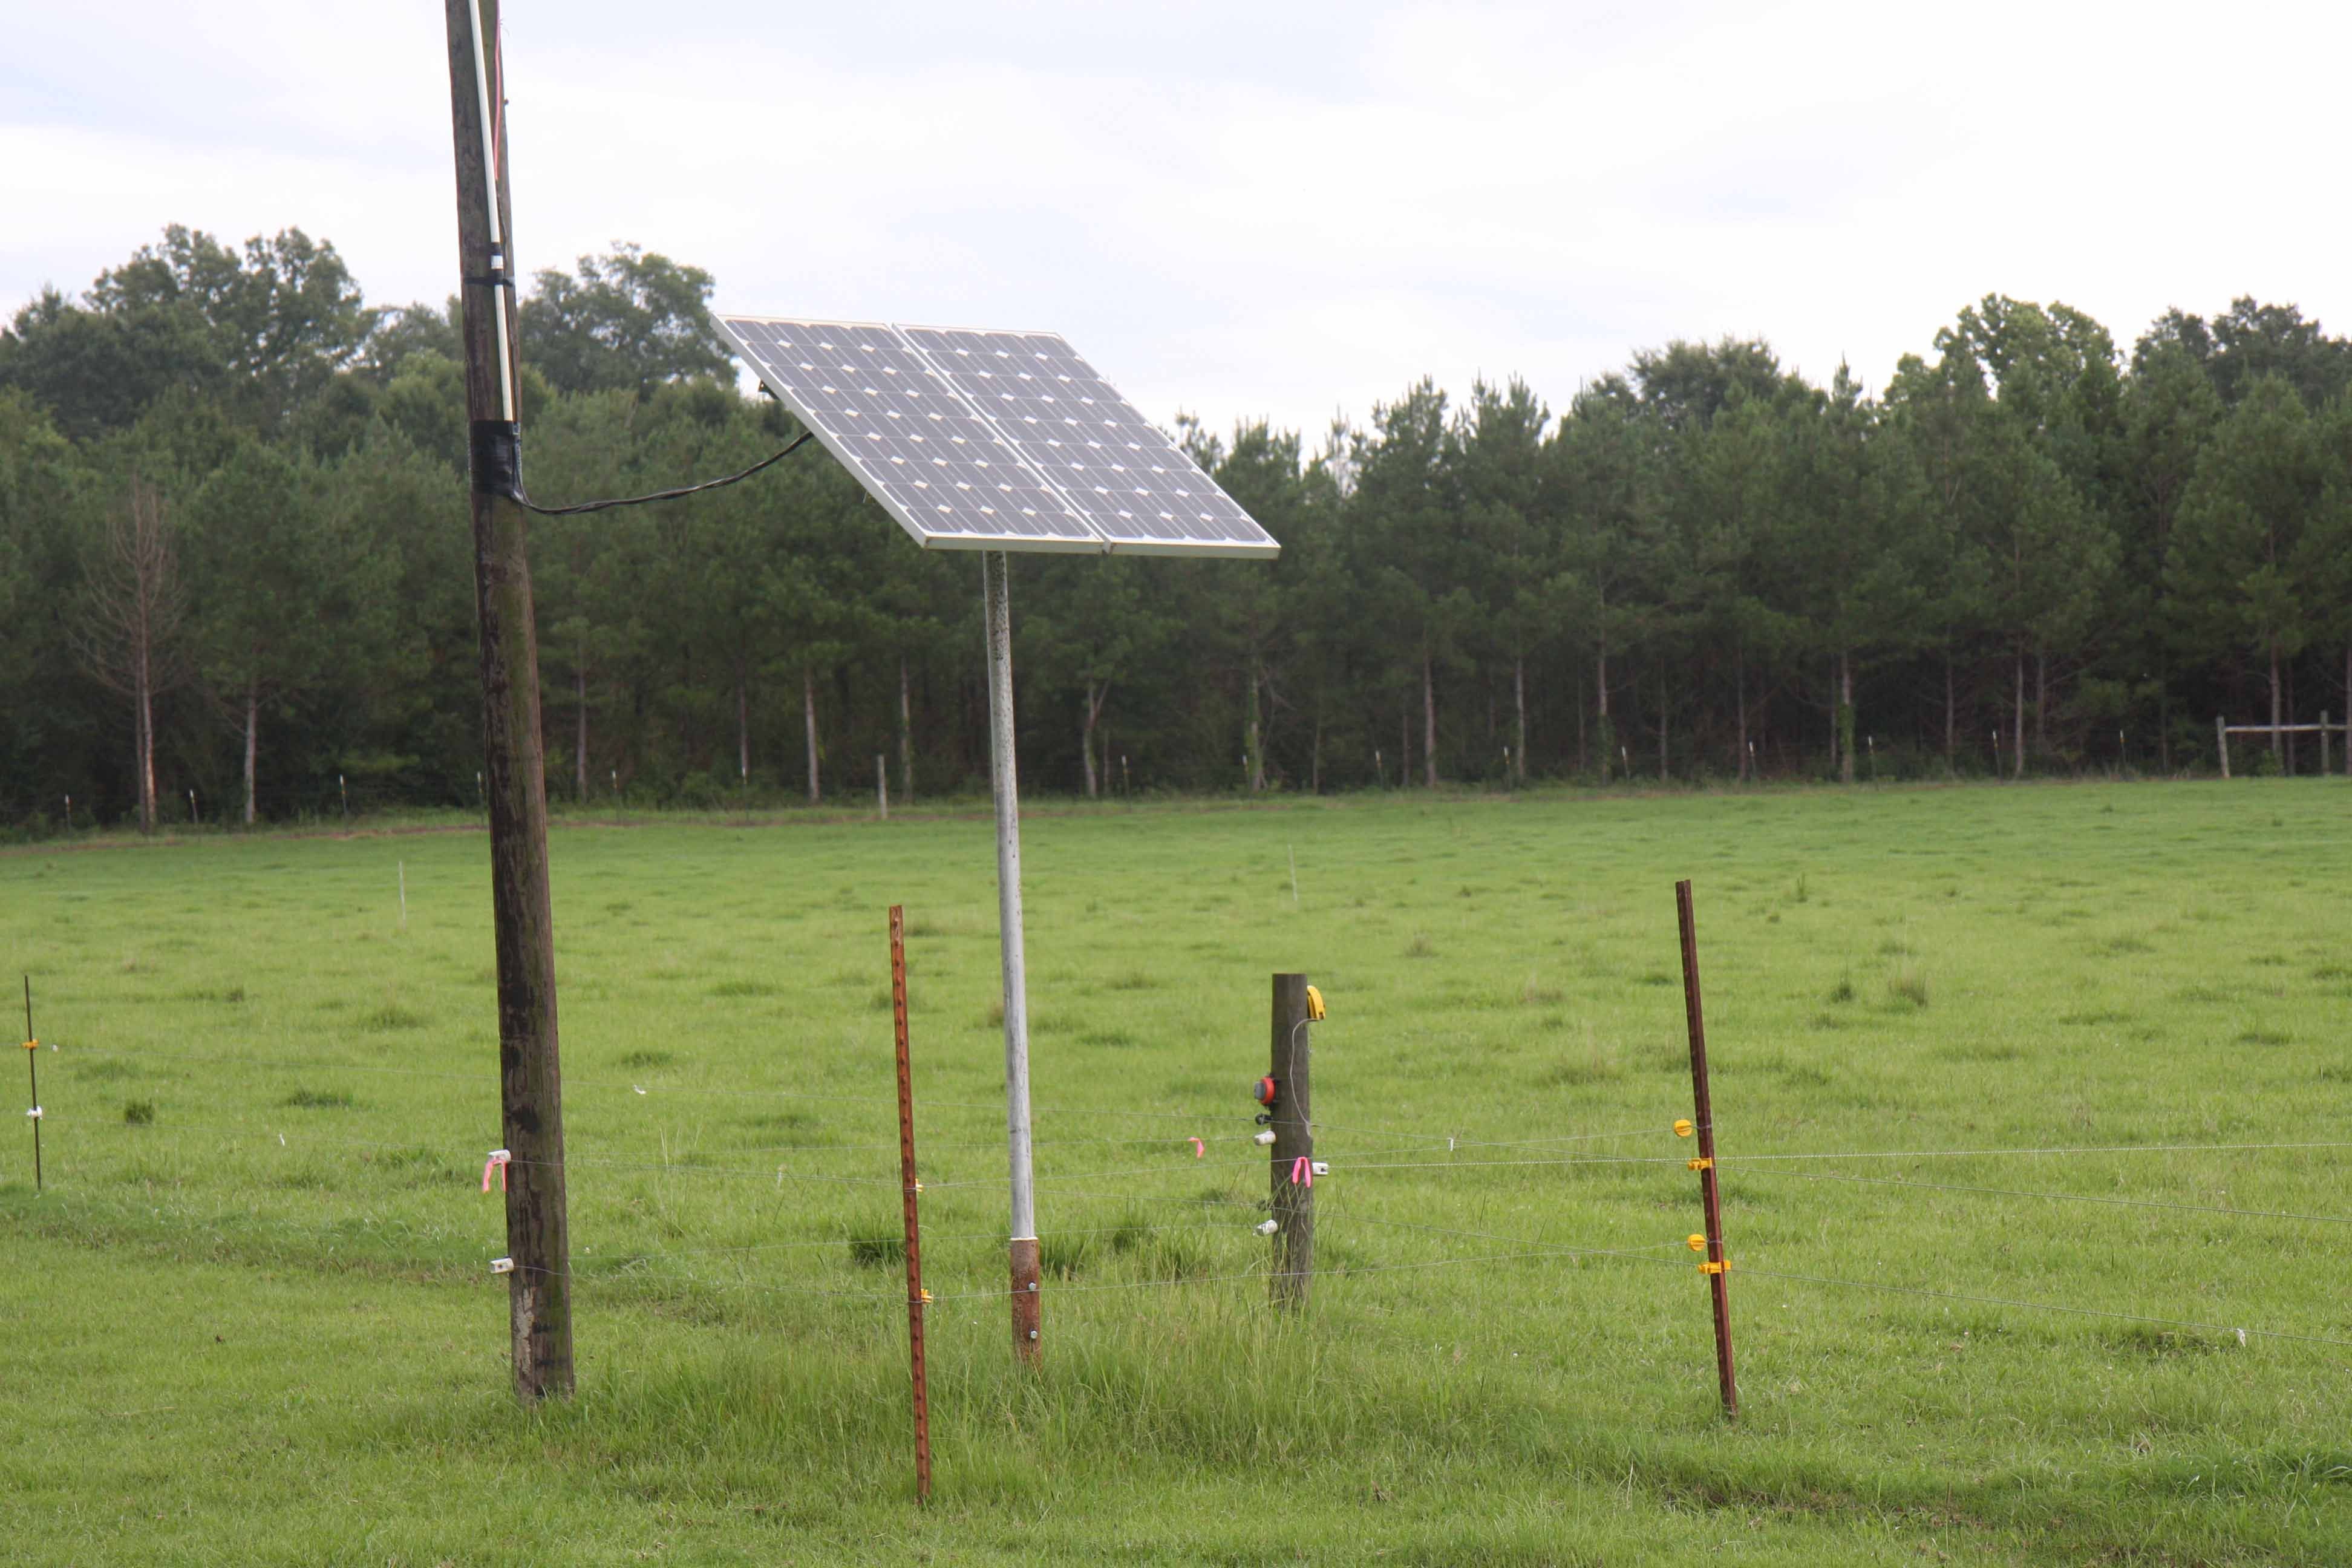 Sage Farms installed a solar-powered well in 2011, and it is a life saver for the rancher's owners